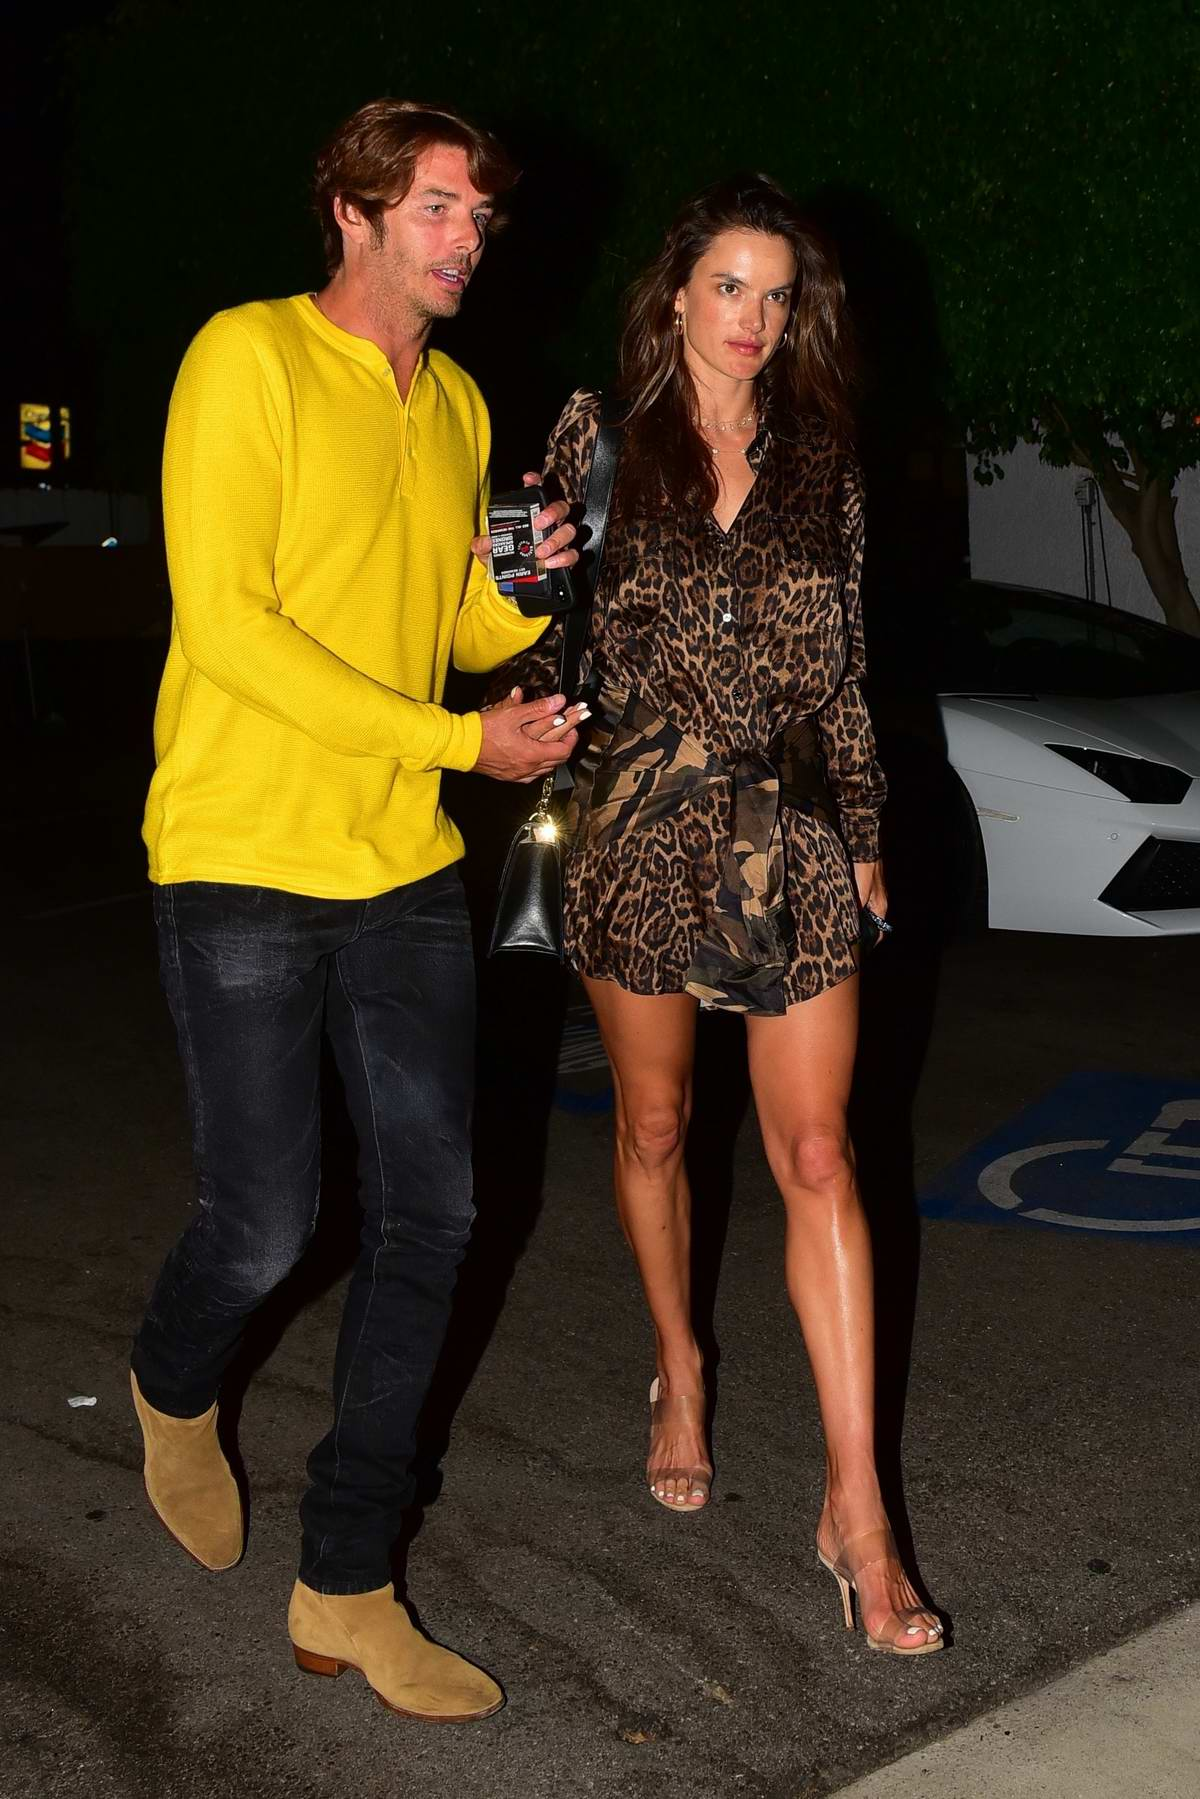 Alessandra Ambrosio looks stunning in animal print during a date night with Nicolo Oddi in Santa Monica, California